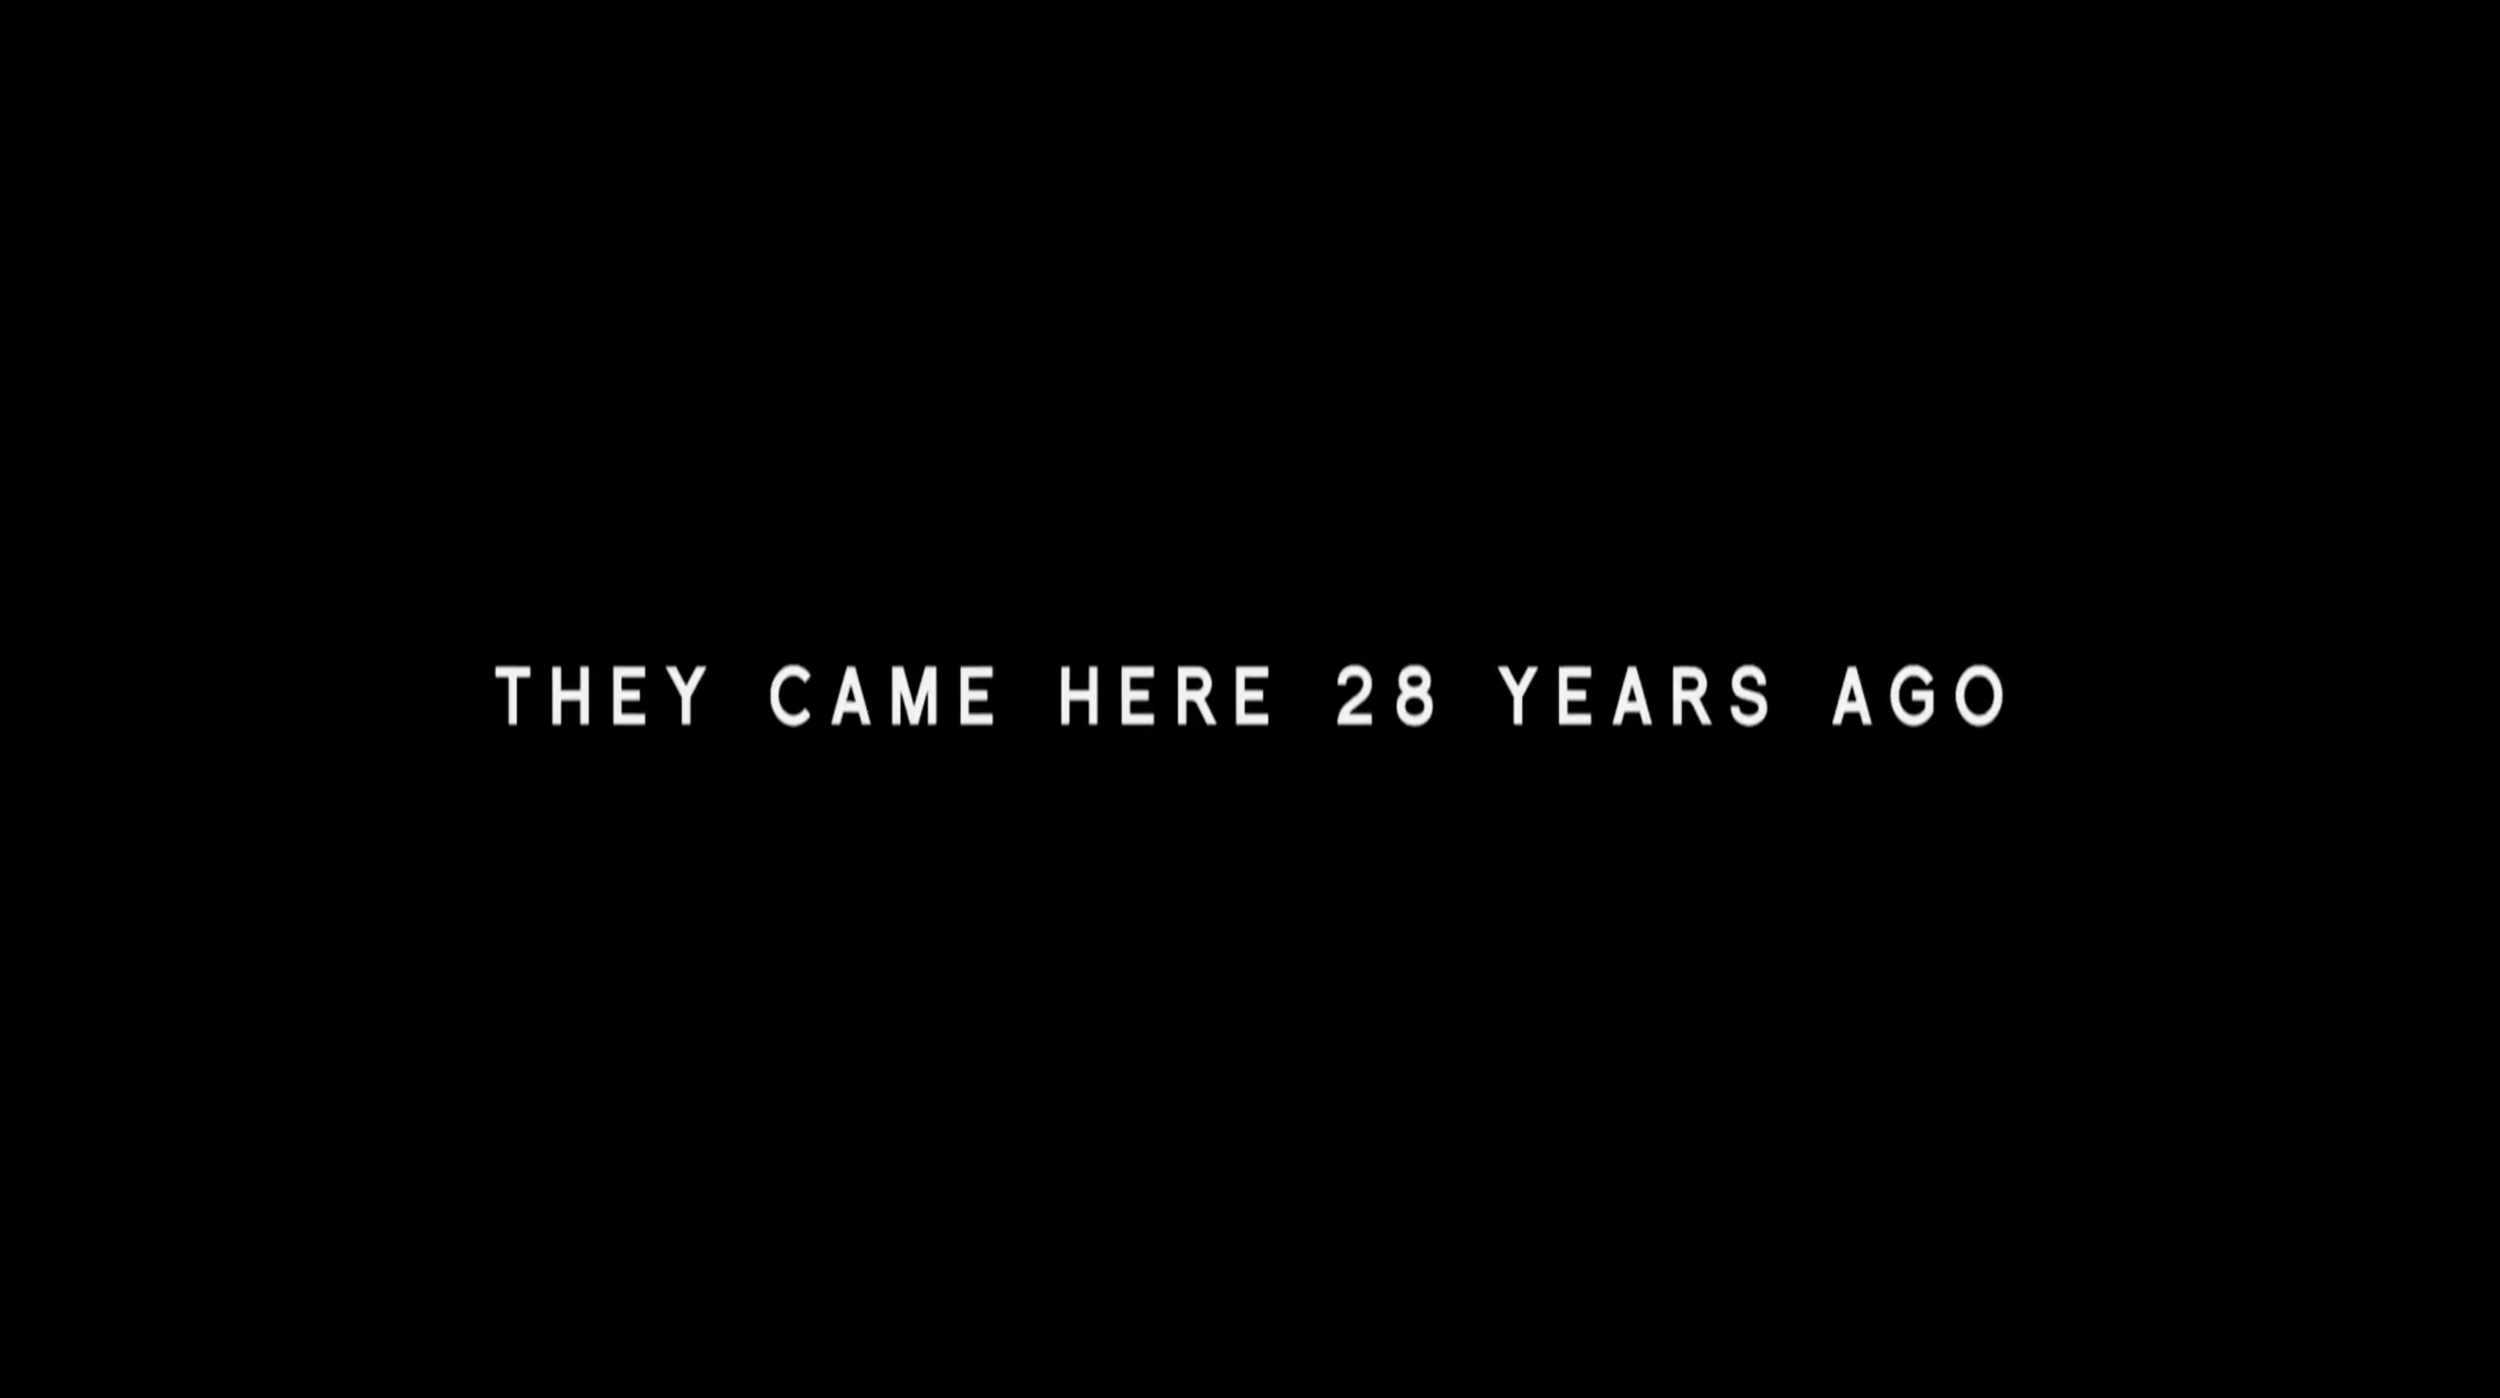 This title card from the trailer for  District 9  gives information no one says in the film.